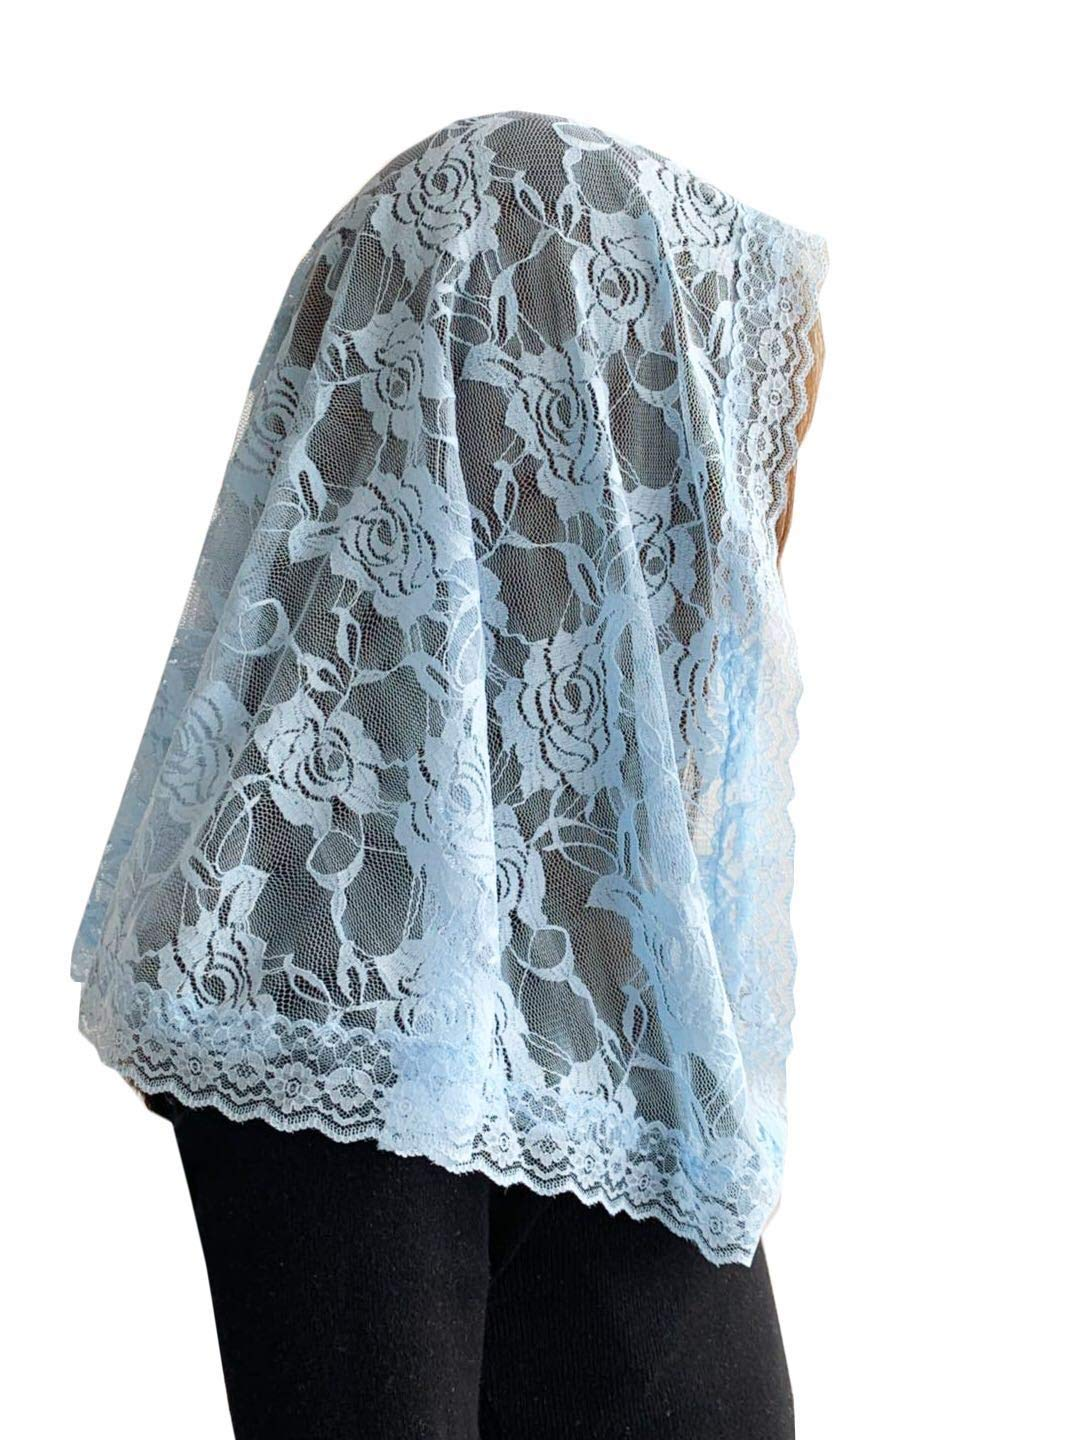 Veil Lace Mantilla Catholic Church Chapel Veil Head Covering Latin Mass (Blue) by Czy accessories (Image #2)